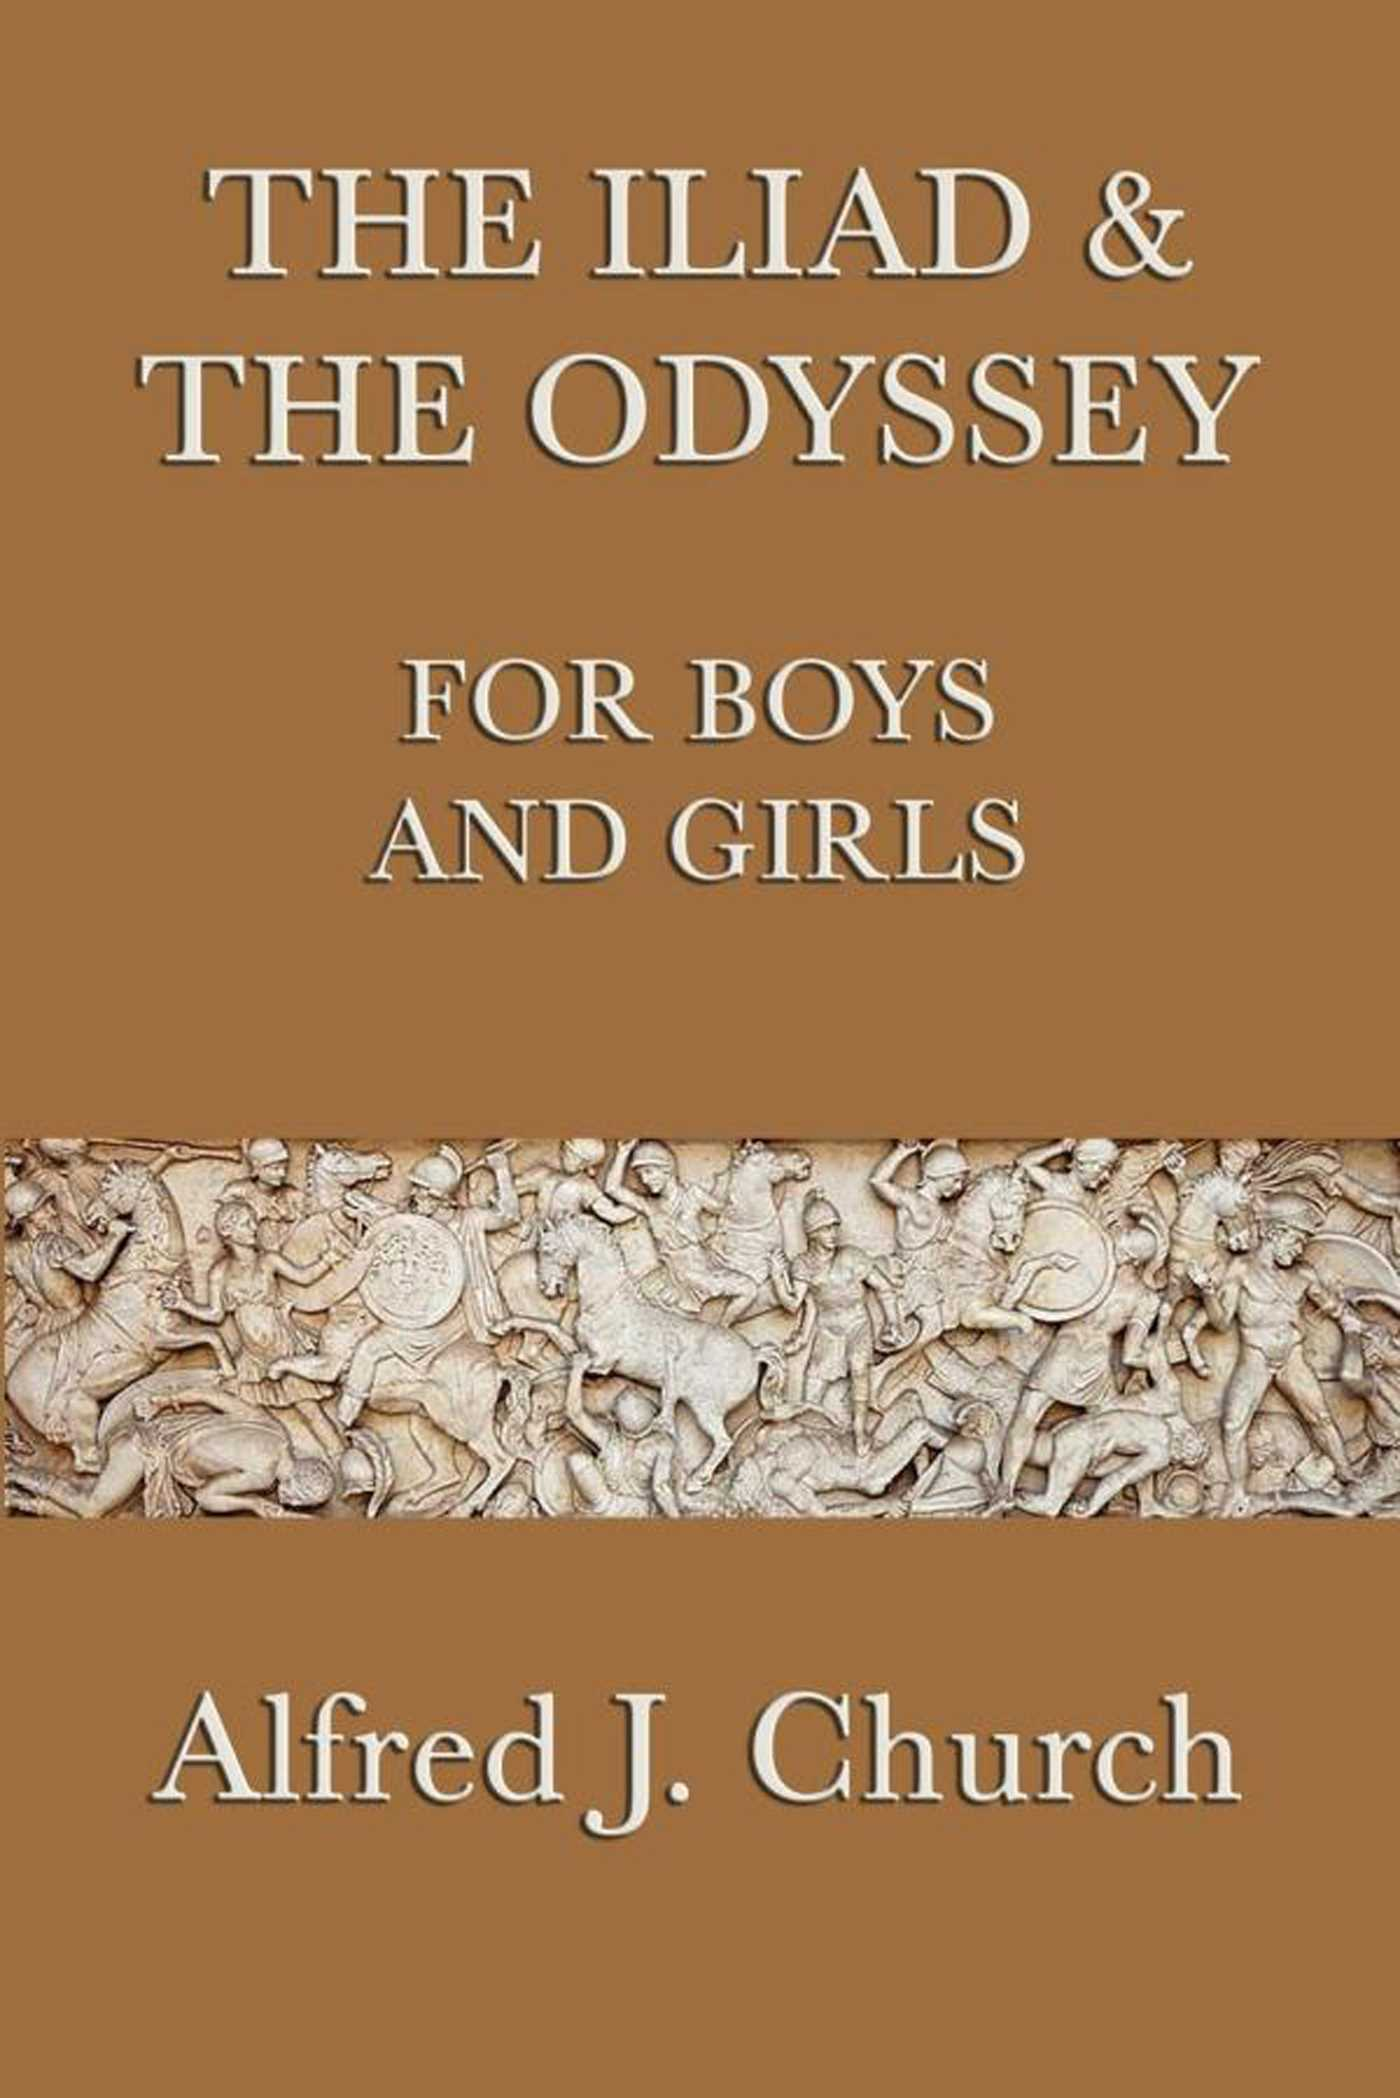 iliad and odyssey switch in ethos The true authorship and dating of the iliad and the other great poem attributed to homer, the odyssey there is much fascinating and erudite scholarship concerning the homeric ethos, involving literary, linguistic, cultural, archaeological.